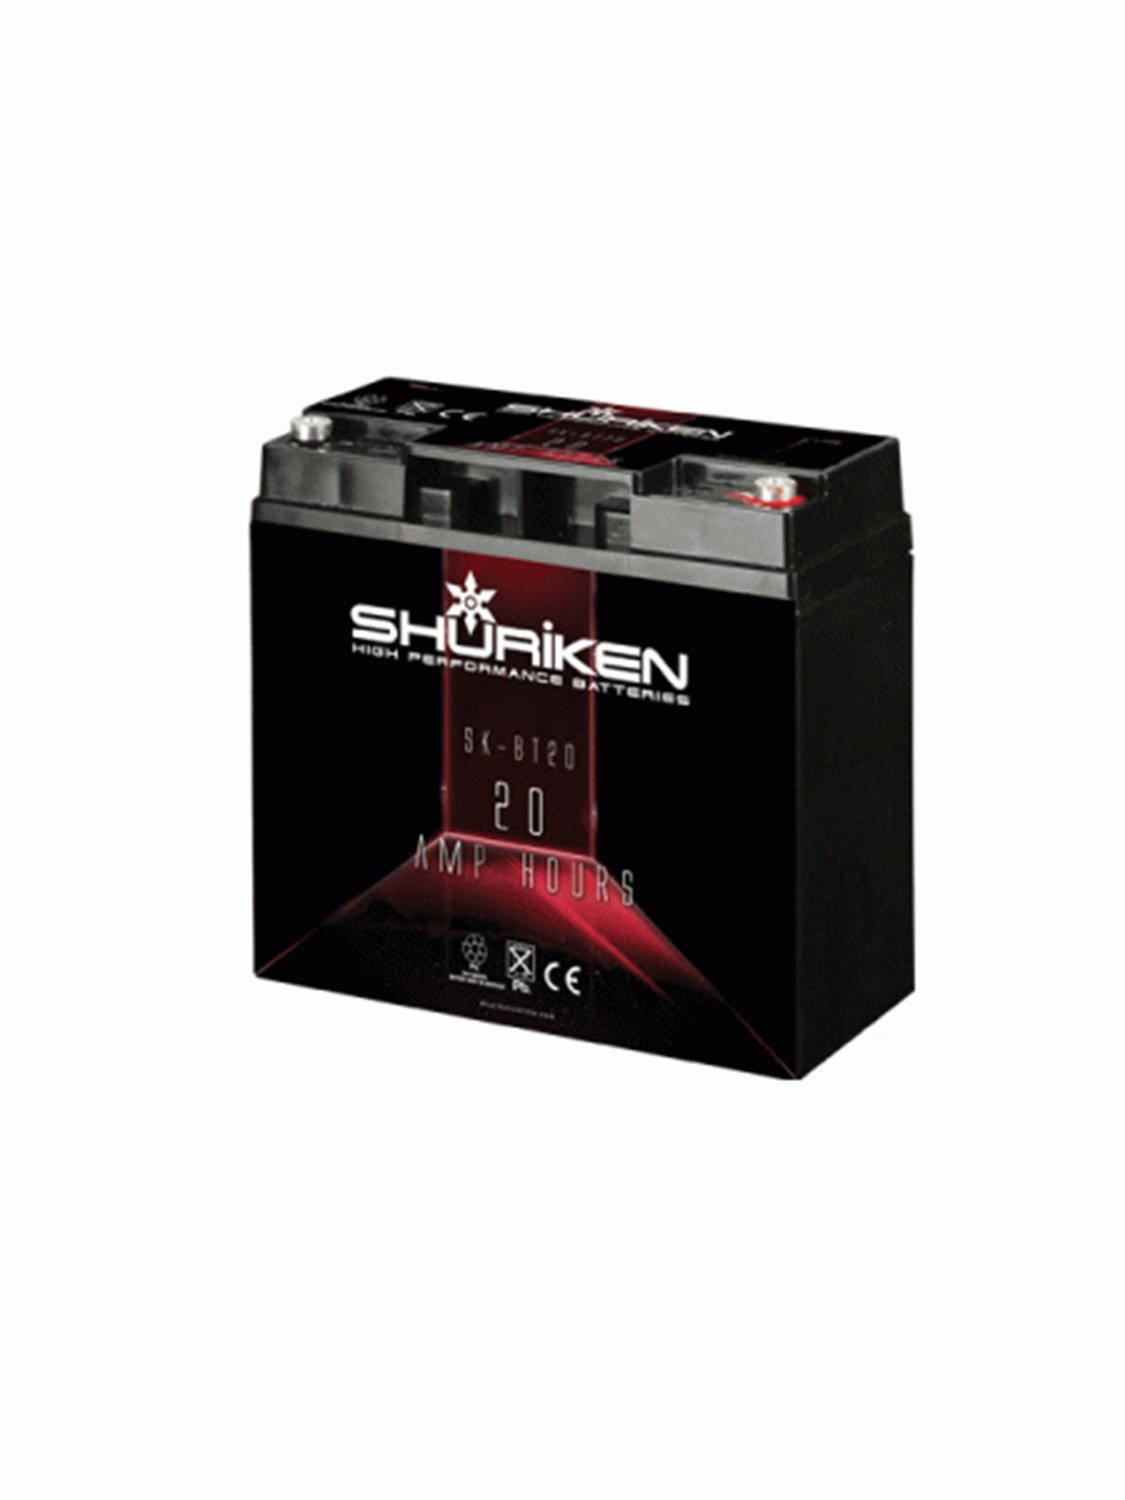 Shuriken SK-BT20 12-Volt High Performance AGM Power Cell Battery for Systems Up to 600-Watts